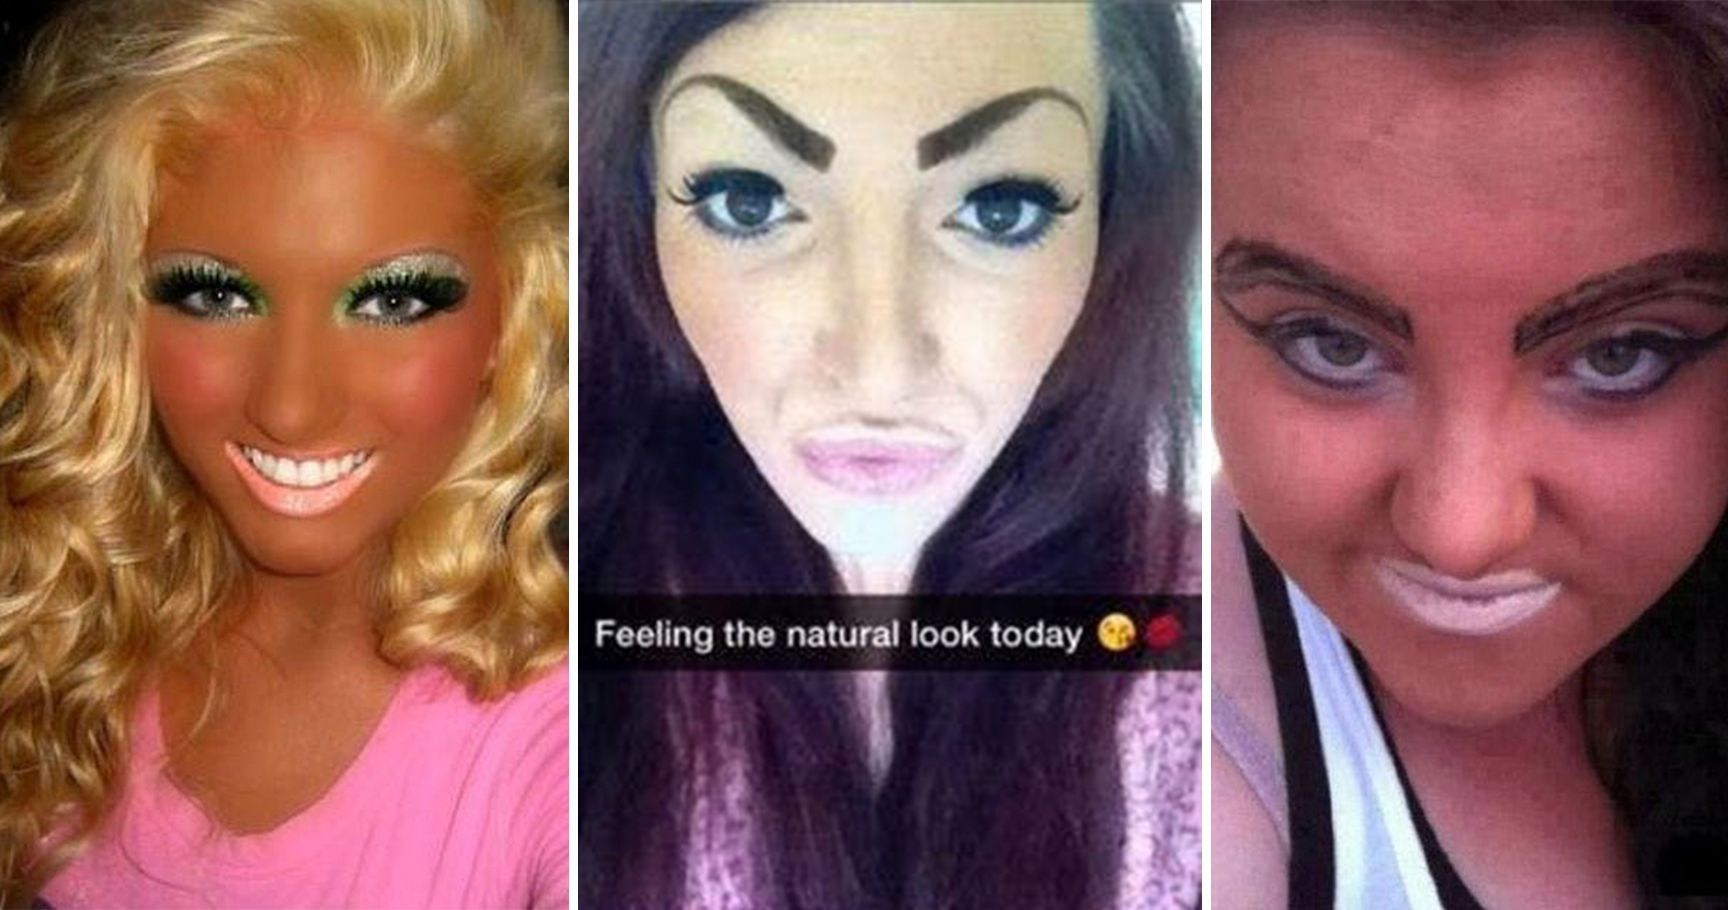 15 Disastrous Makeup Fails That Are An Embarrassment To The Internet